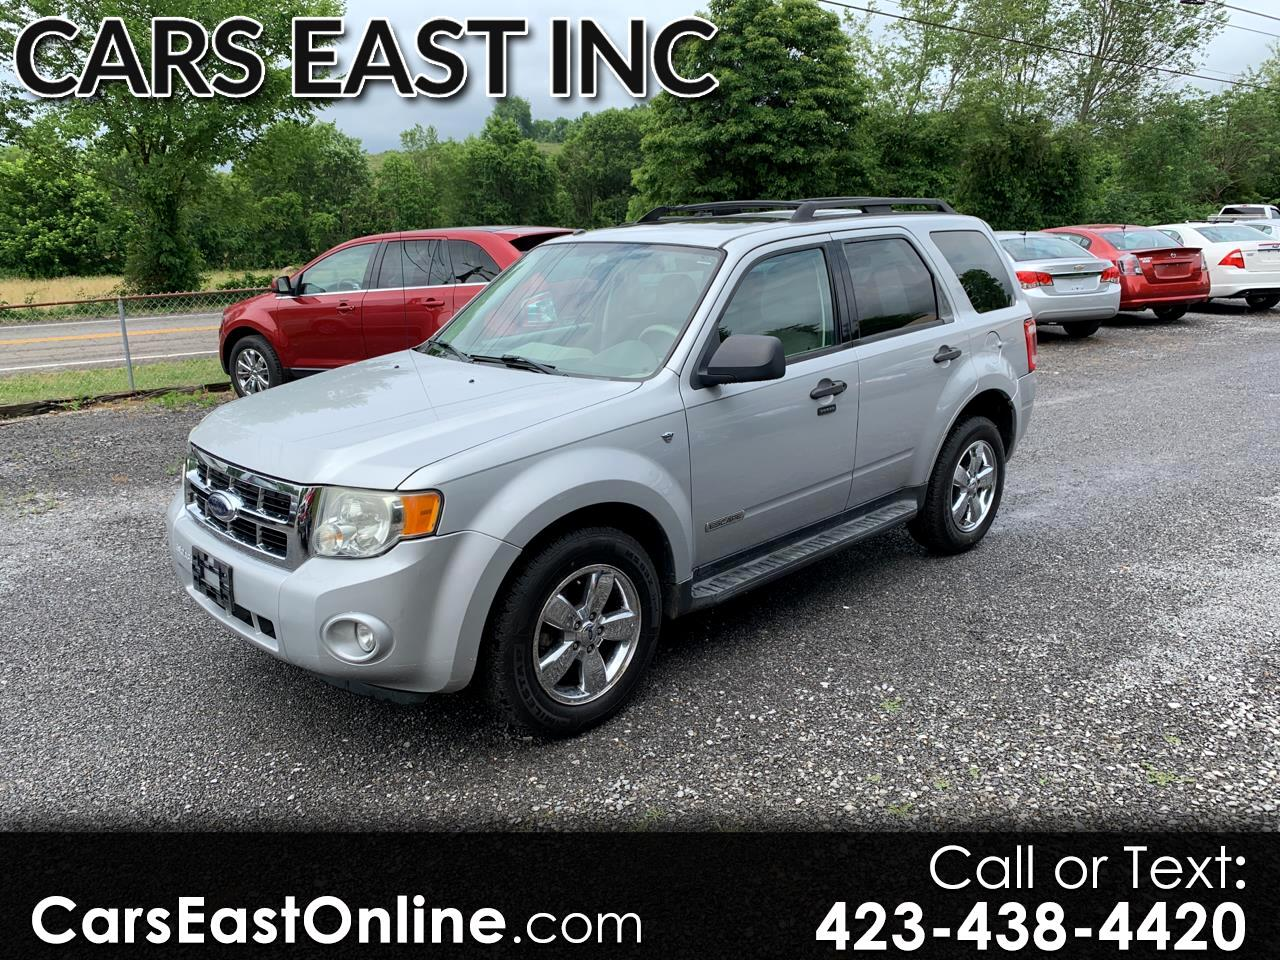 2008 Ford Escape 4WD 4dr V6 Auto XLT